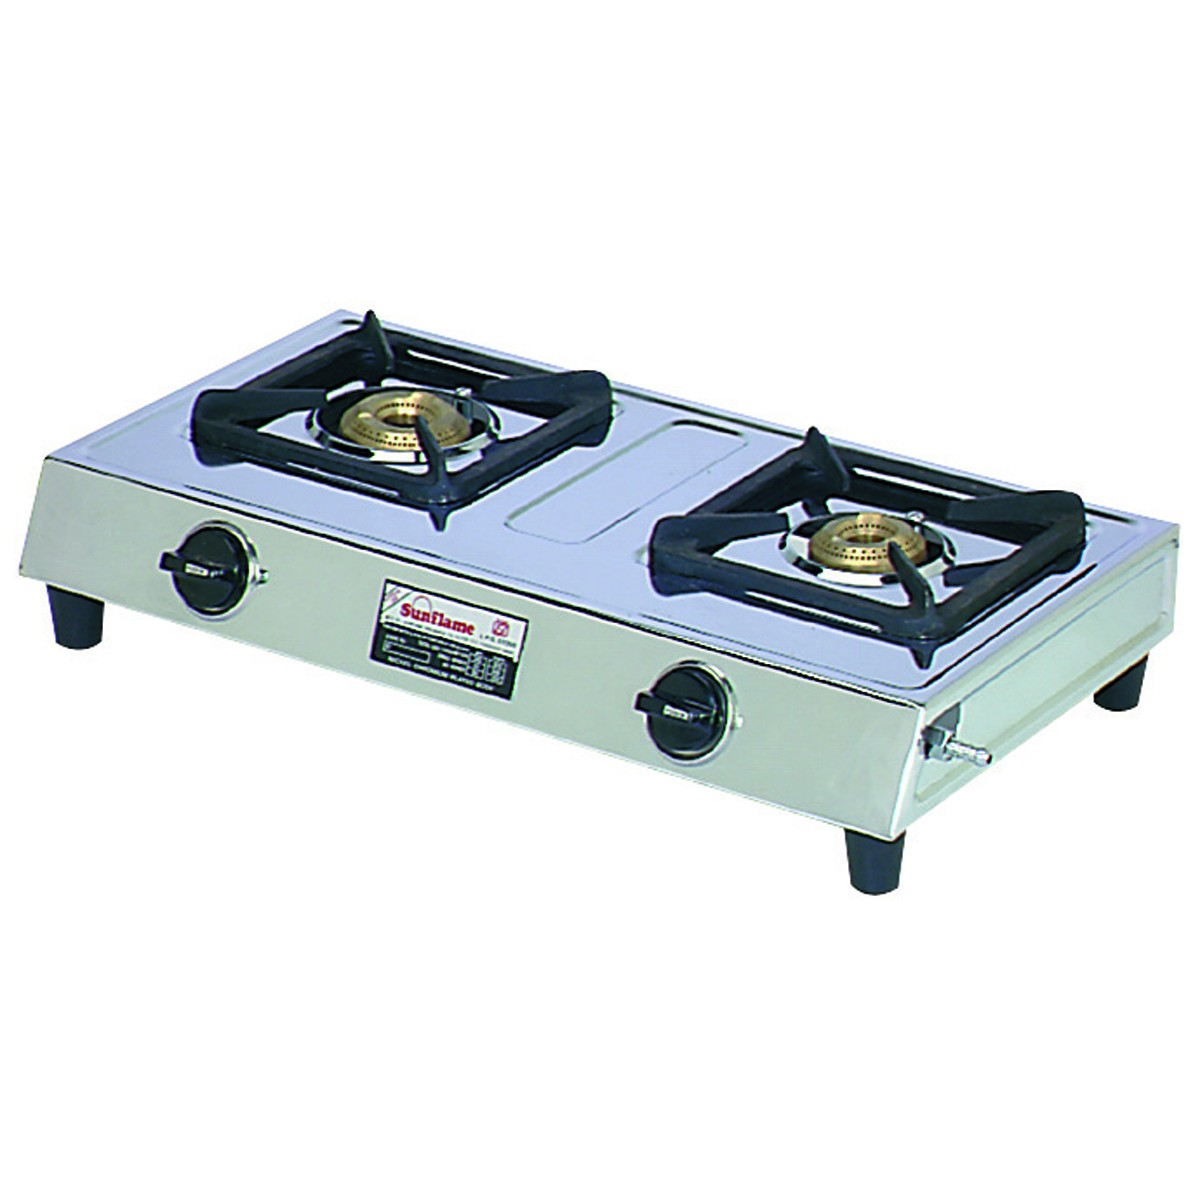 Rv Propane Stove >> 5 Rv Stoves Or Cooktops For Cooking On The Road Rvshare Com